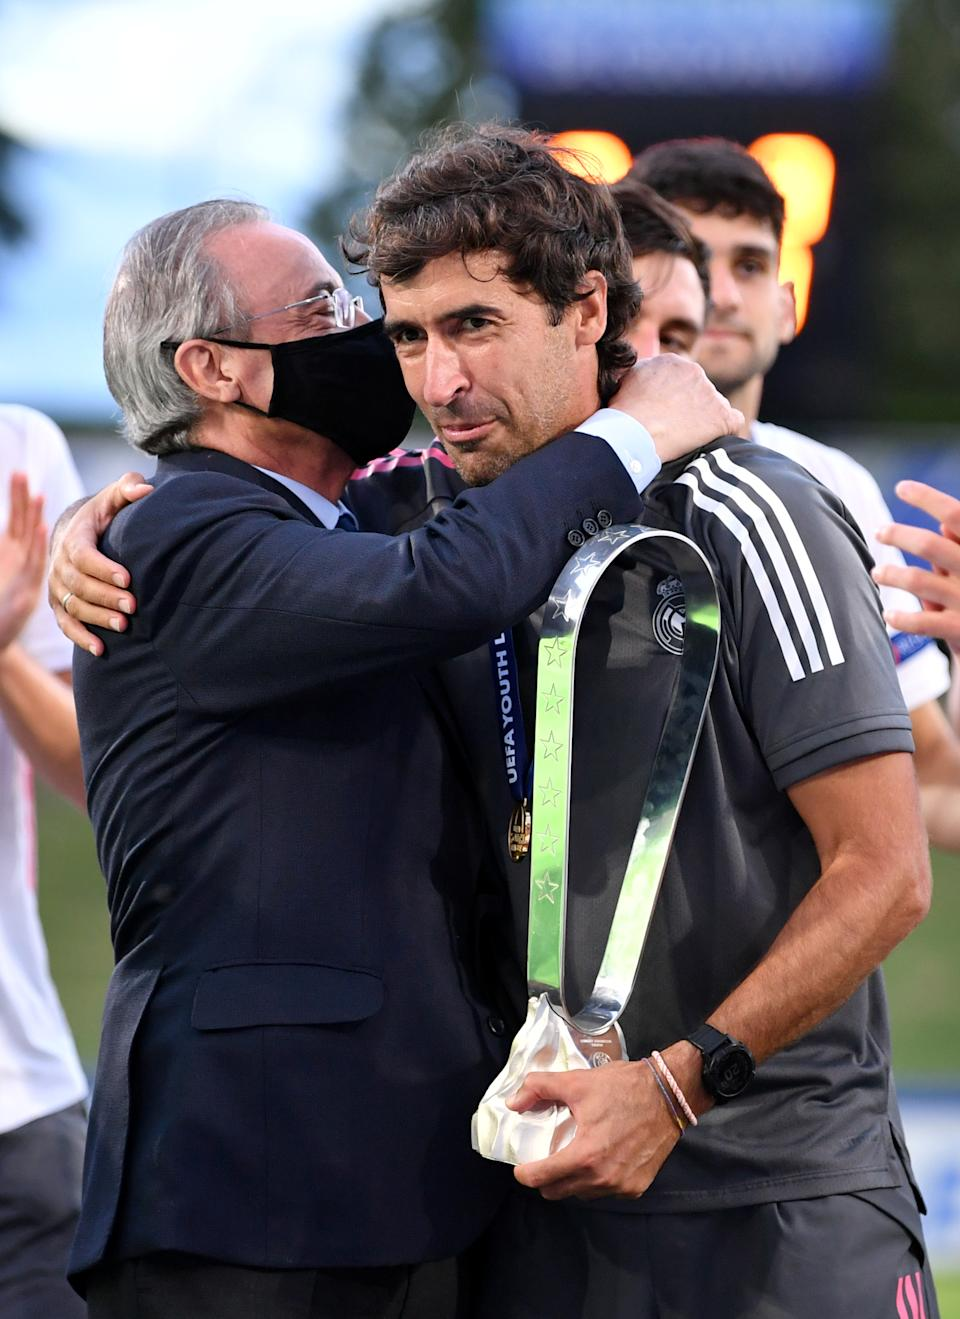 NYON, SWITZERLAND - AUGUST 25: Real Madrid CF Presdient Florentino Perez and head coach Raul Gonzalez Blanco following the UEFA Youth League Final 2019/20 between SL Benfica and Real Madrid CF at Colovray Sports Center on August 25, 2020, in Nyon, Switzerland (Photo by Harold Cunningham - UEFA/UEFA via Getty Images)